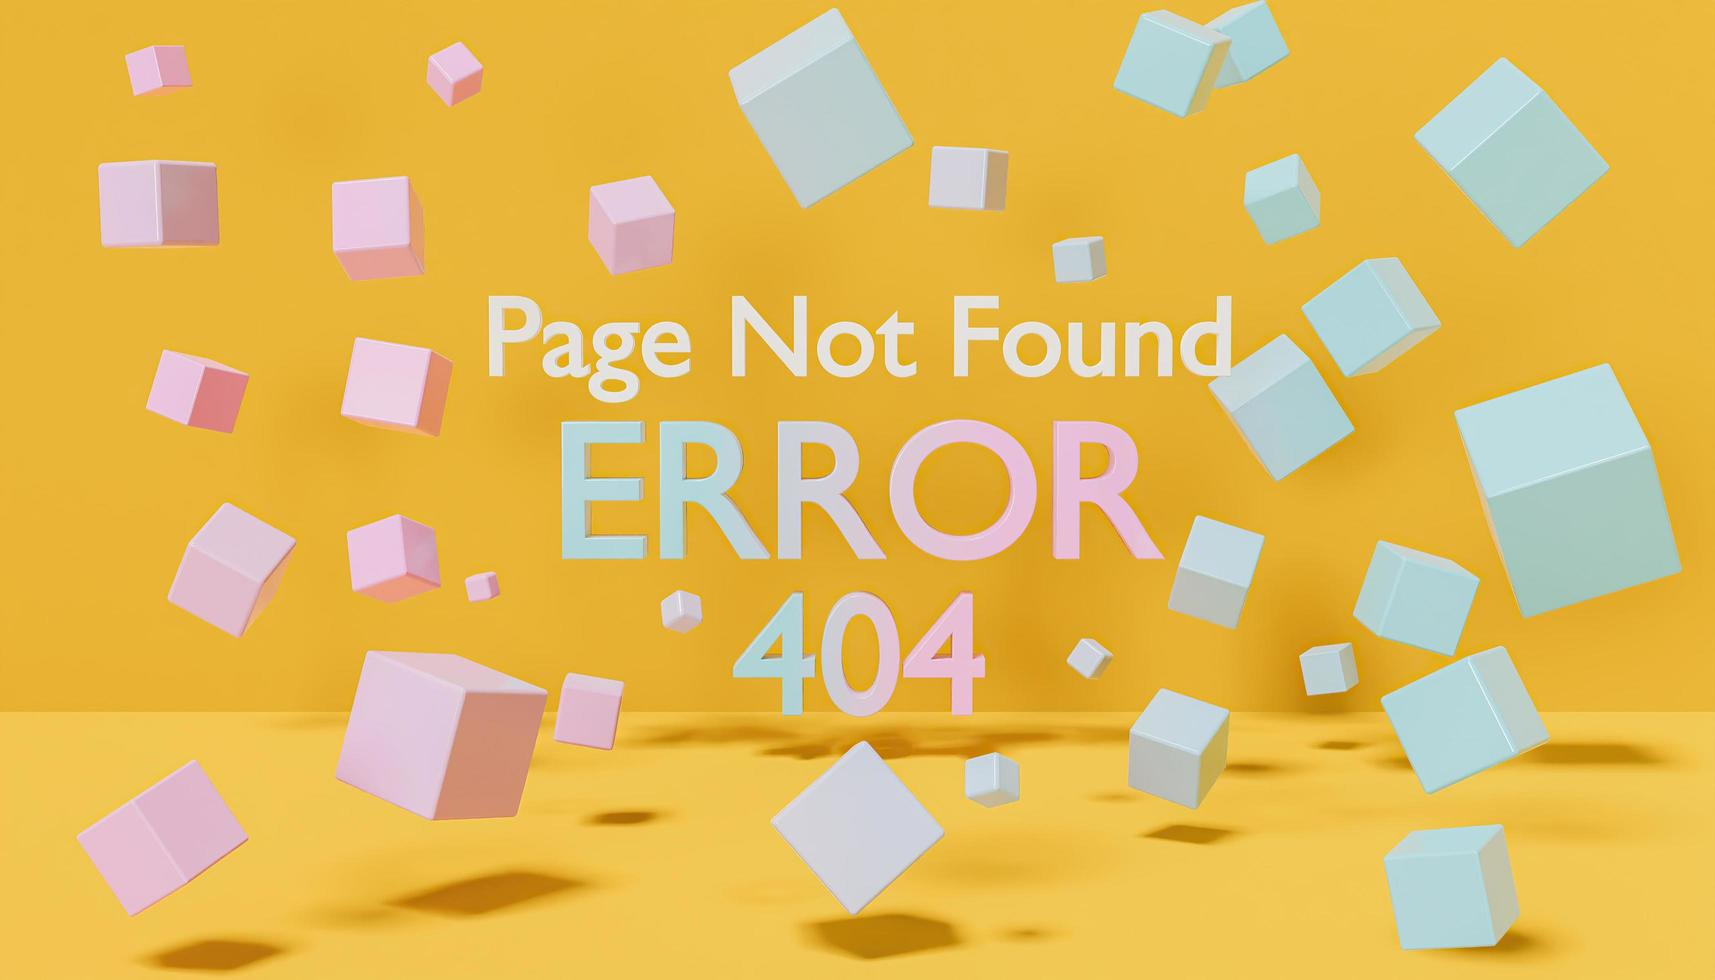 ERROR 404 sign with cubes floating around it photo